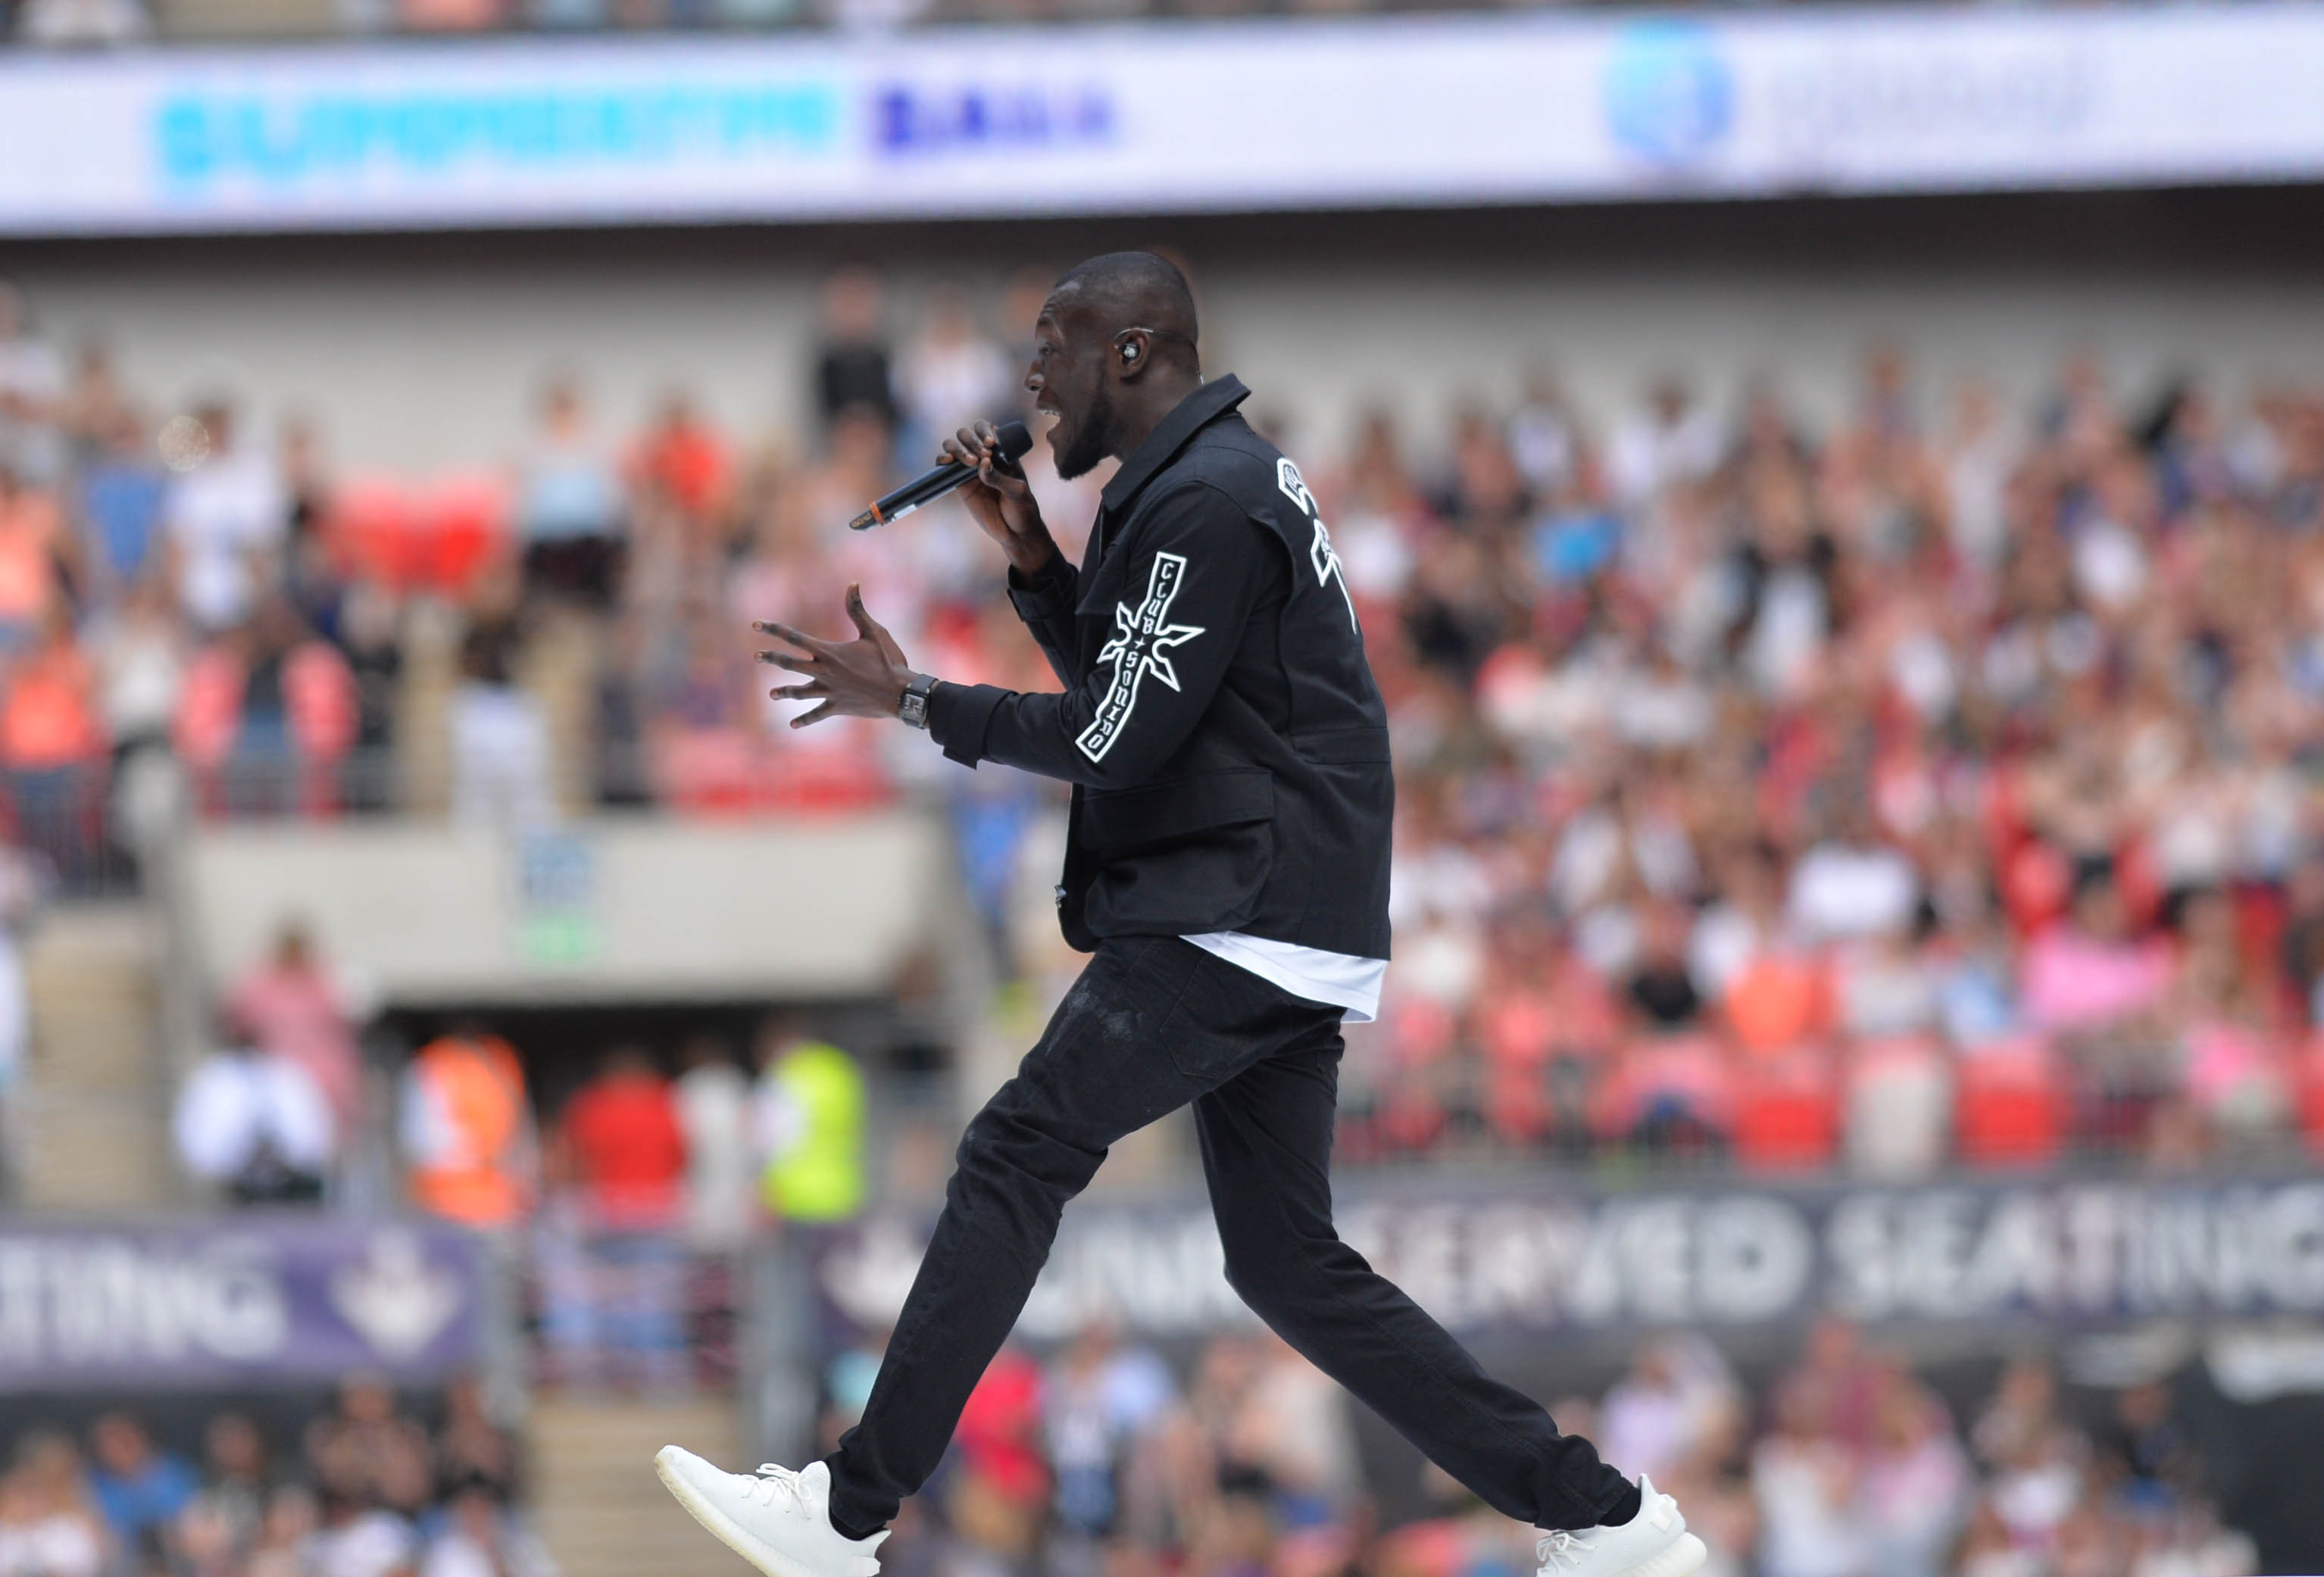 Stormzy Capital FM Summertime Ball 2017